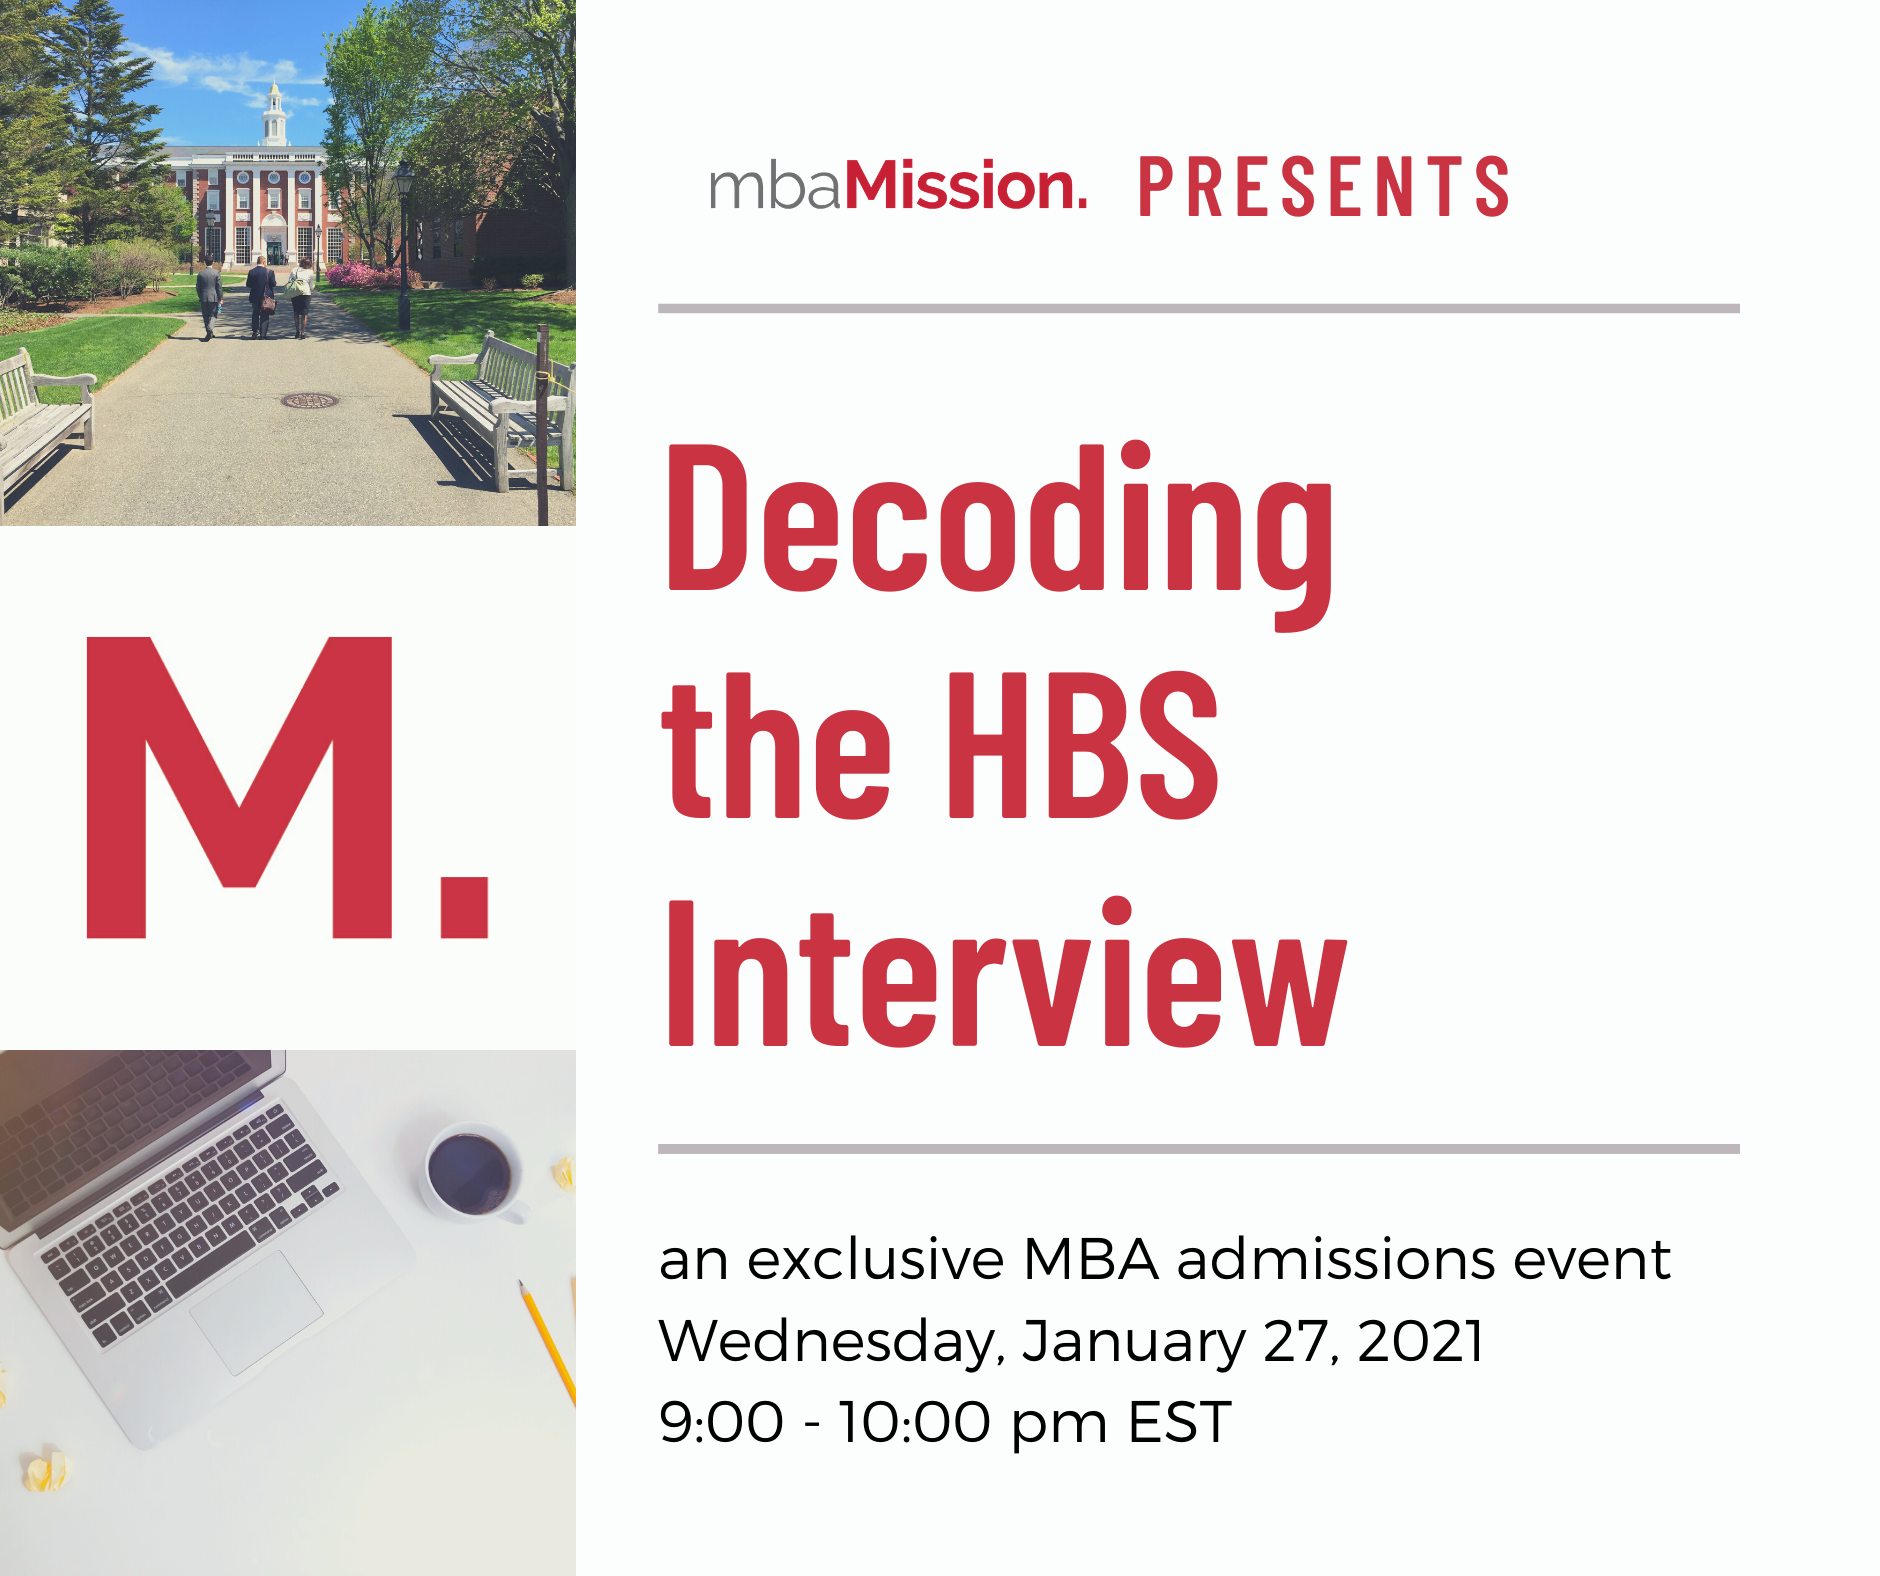 Decoding the HBS Interview: A New Webinar for HBS Applicants